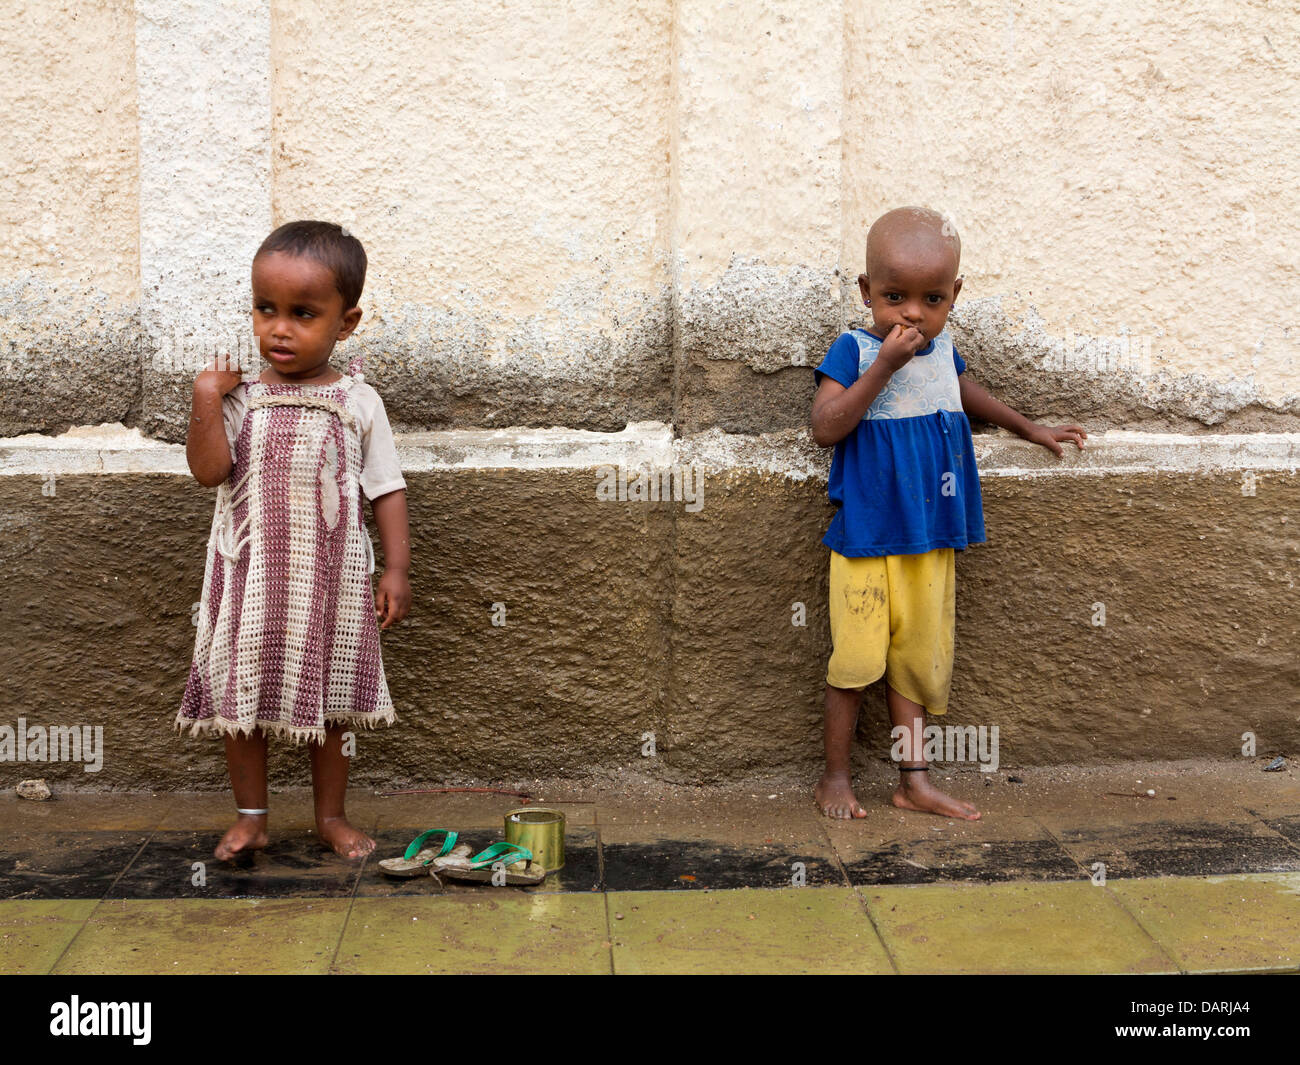 Africa, Eritrea, Massawa, Old Town, two young Eritrean children on wet pavement - Stock Image